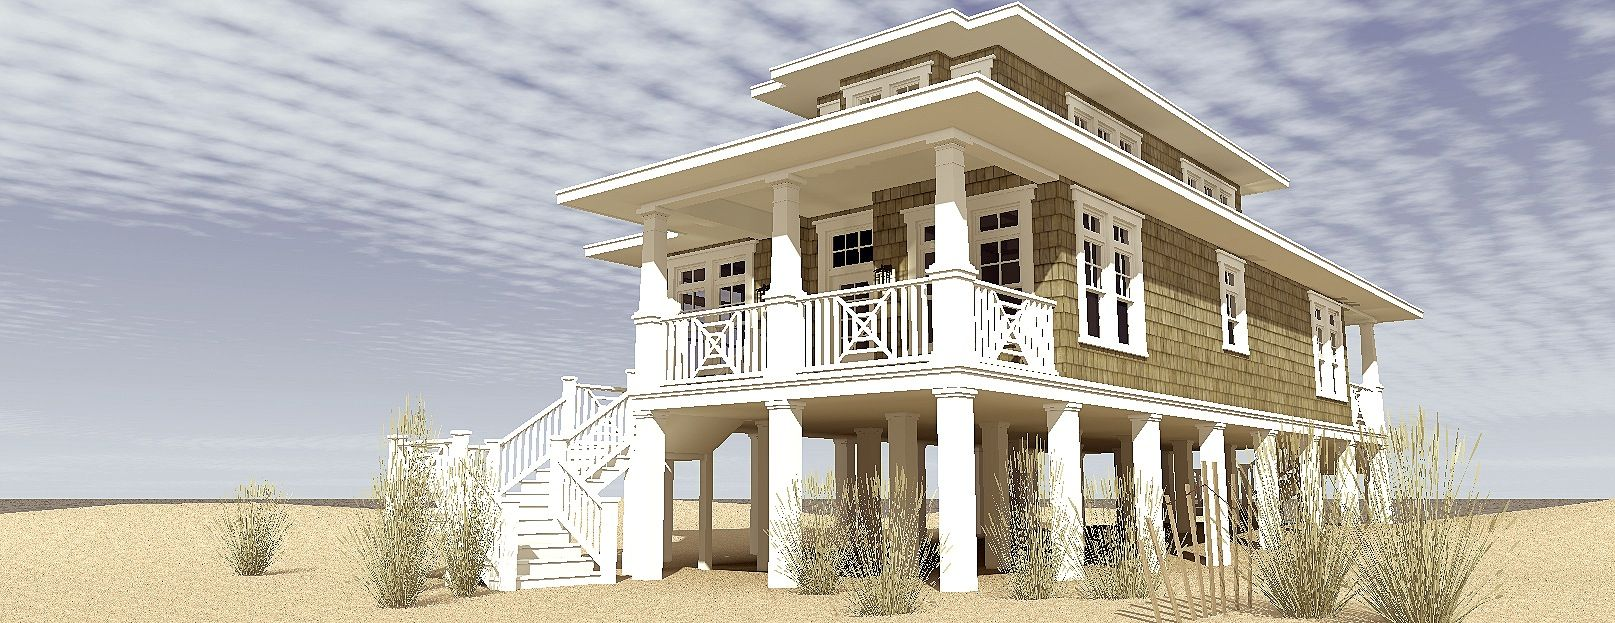 3 Bedroom Beach House Plan Tyree House Plans In 2021 Coastal House Plans Beach House Plan Beach House Plans